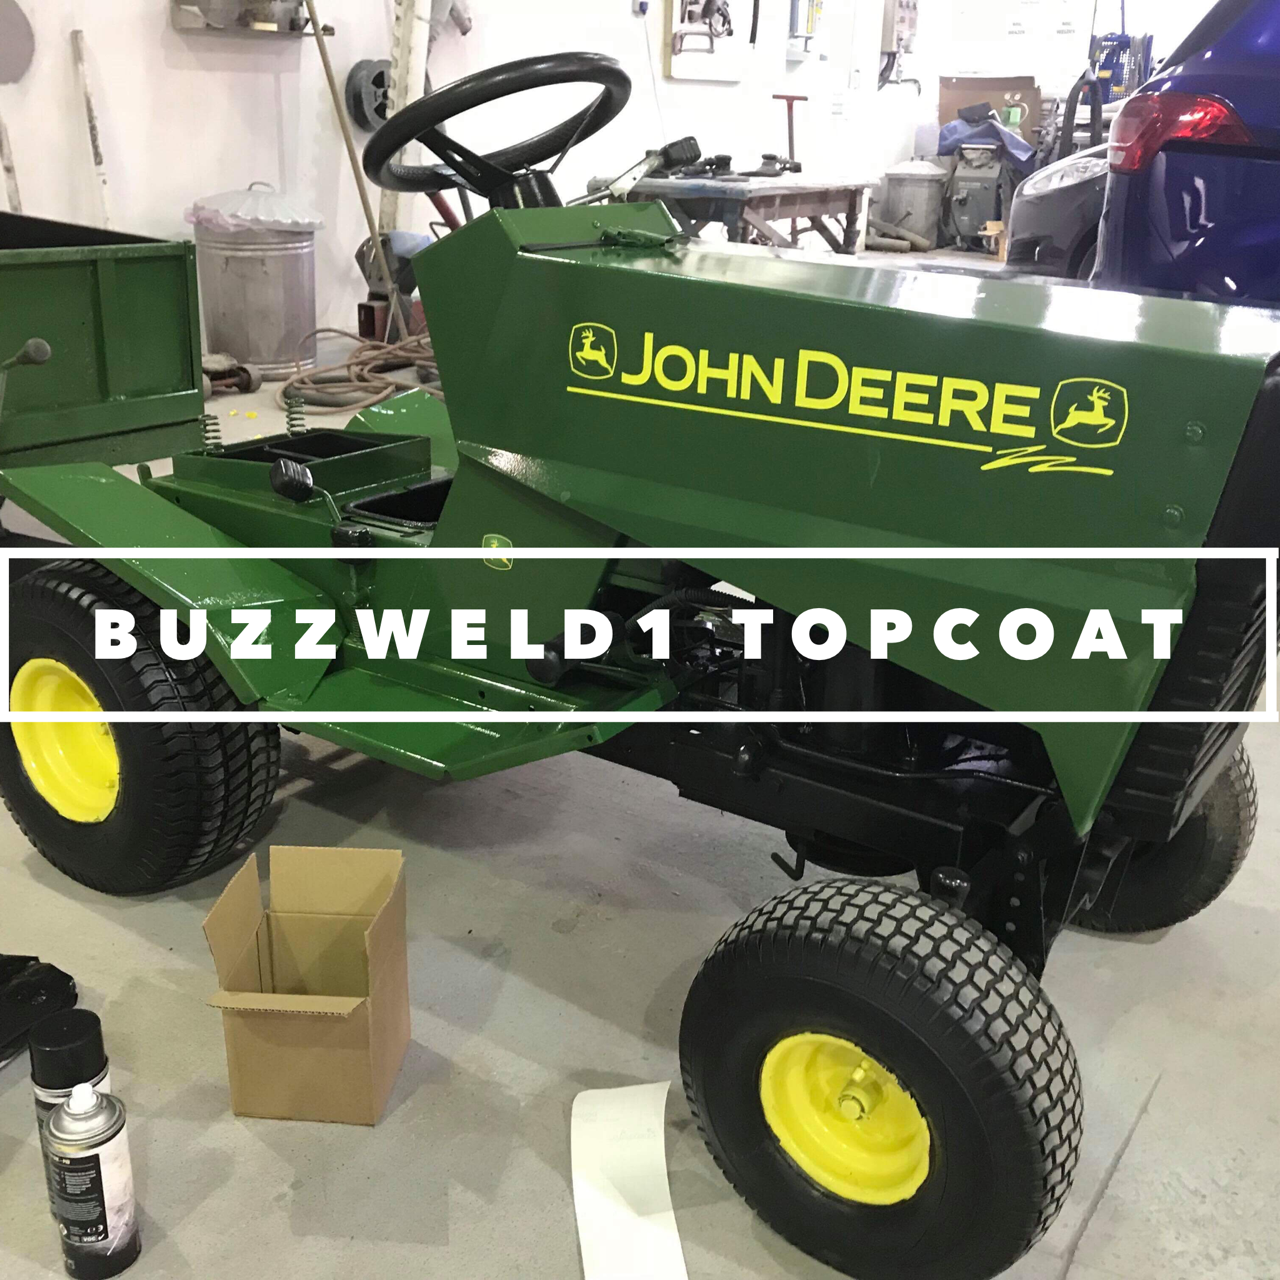 Buzzweld 1 Top coat